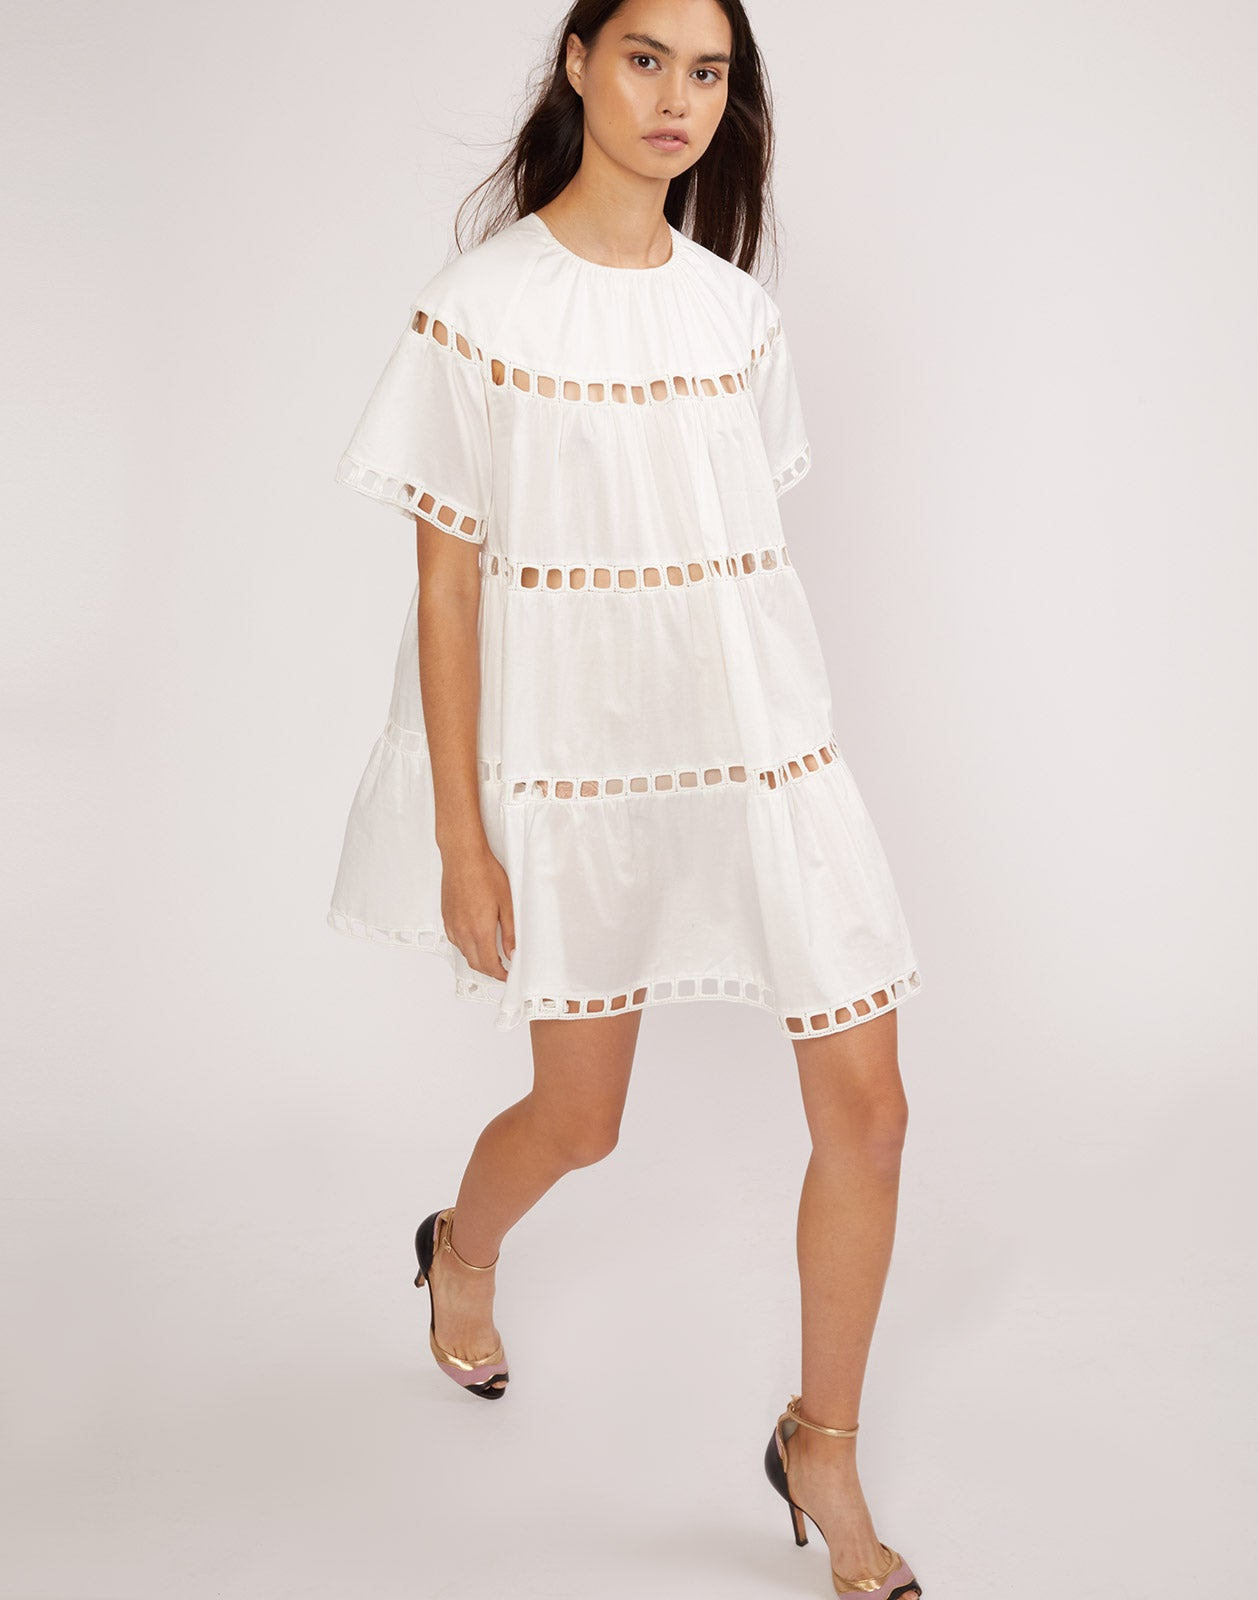 Full front view of the white eyelet Postcard dress.